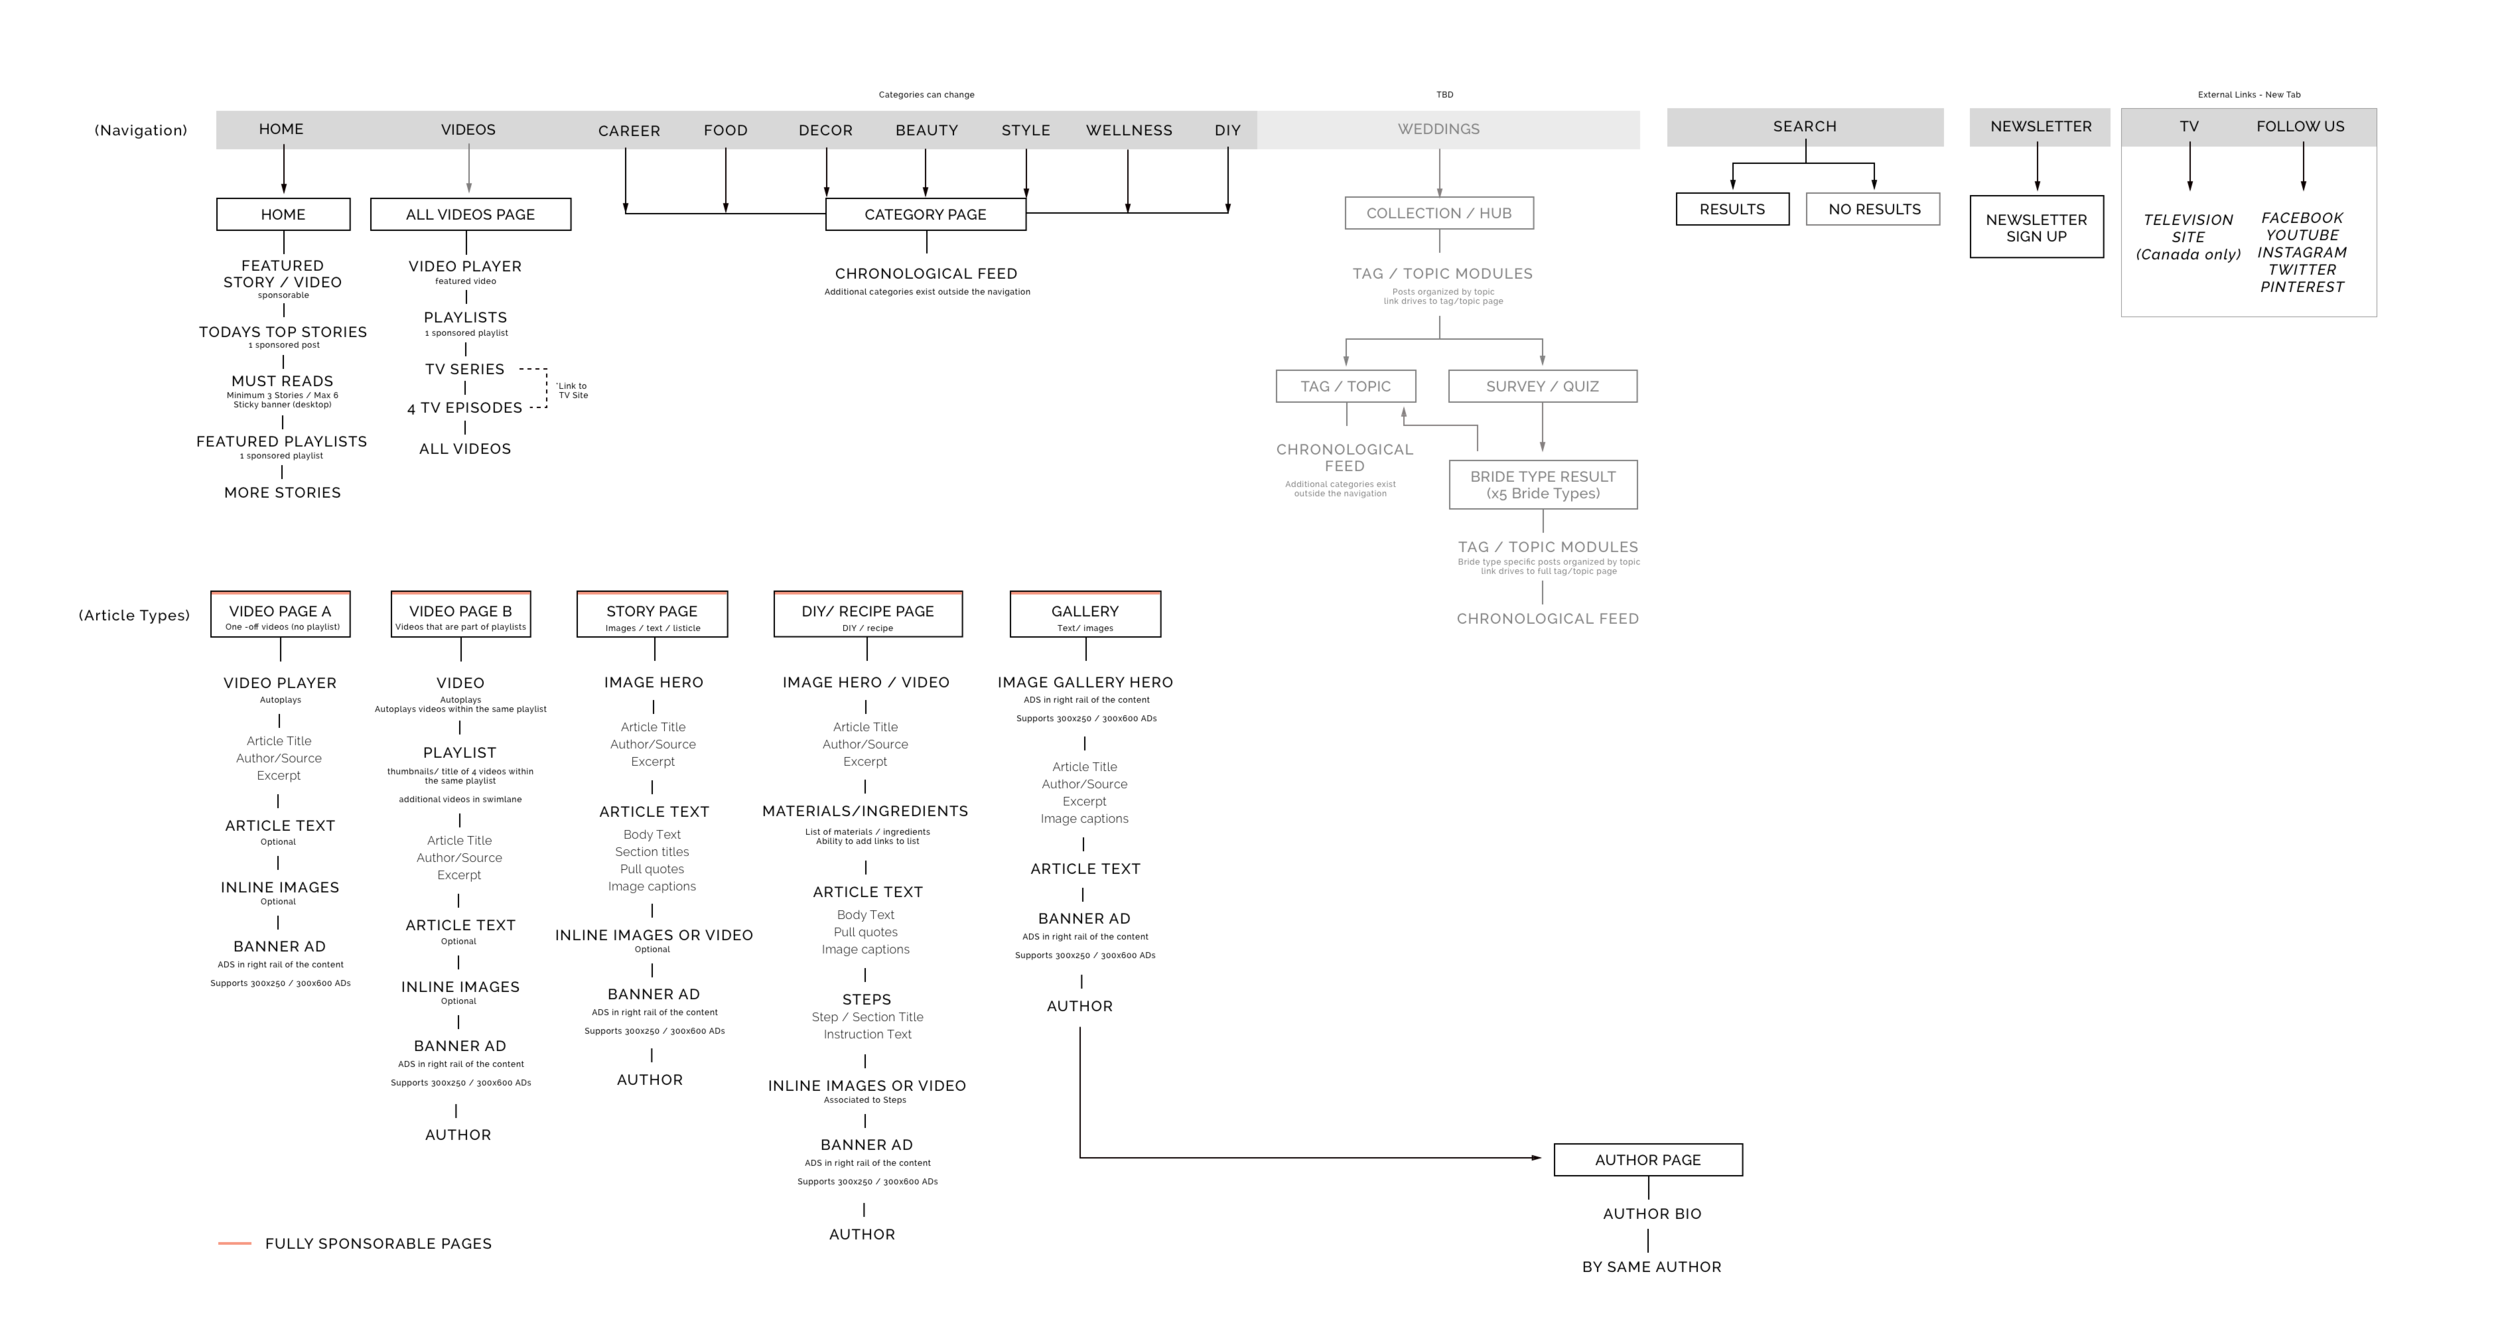 Makeful sitemap. Everything eventually leads to an article page. (Pages are indicated through box outline)